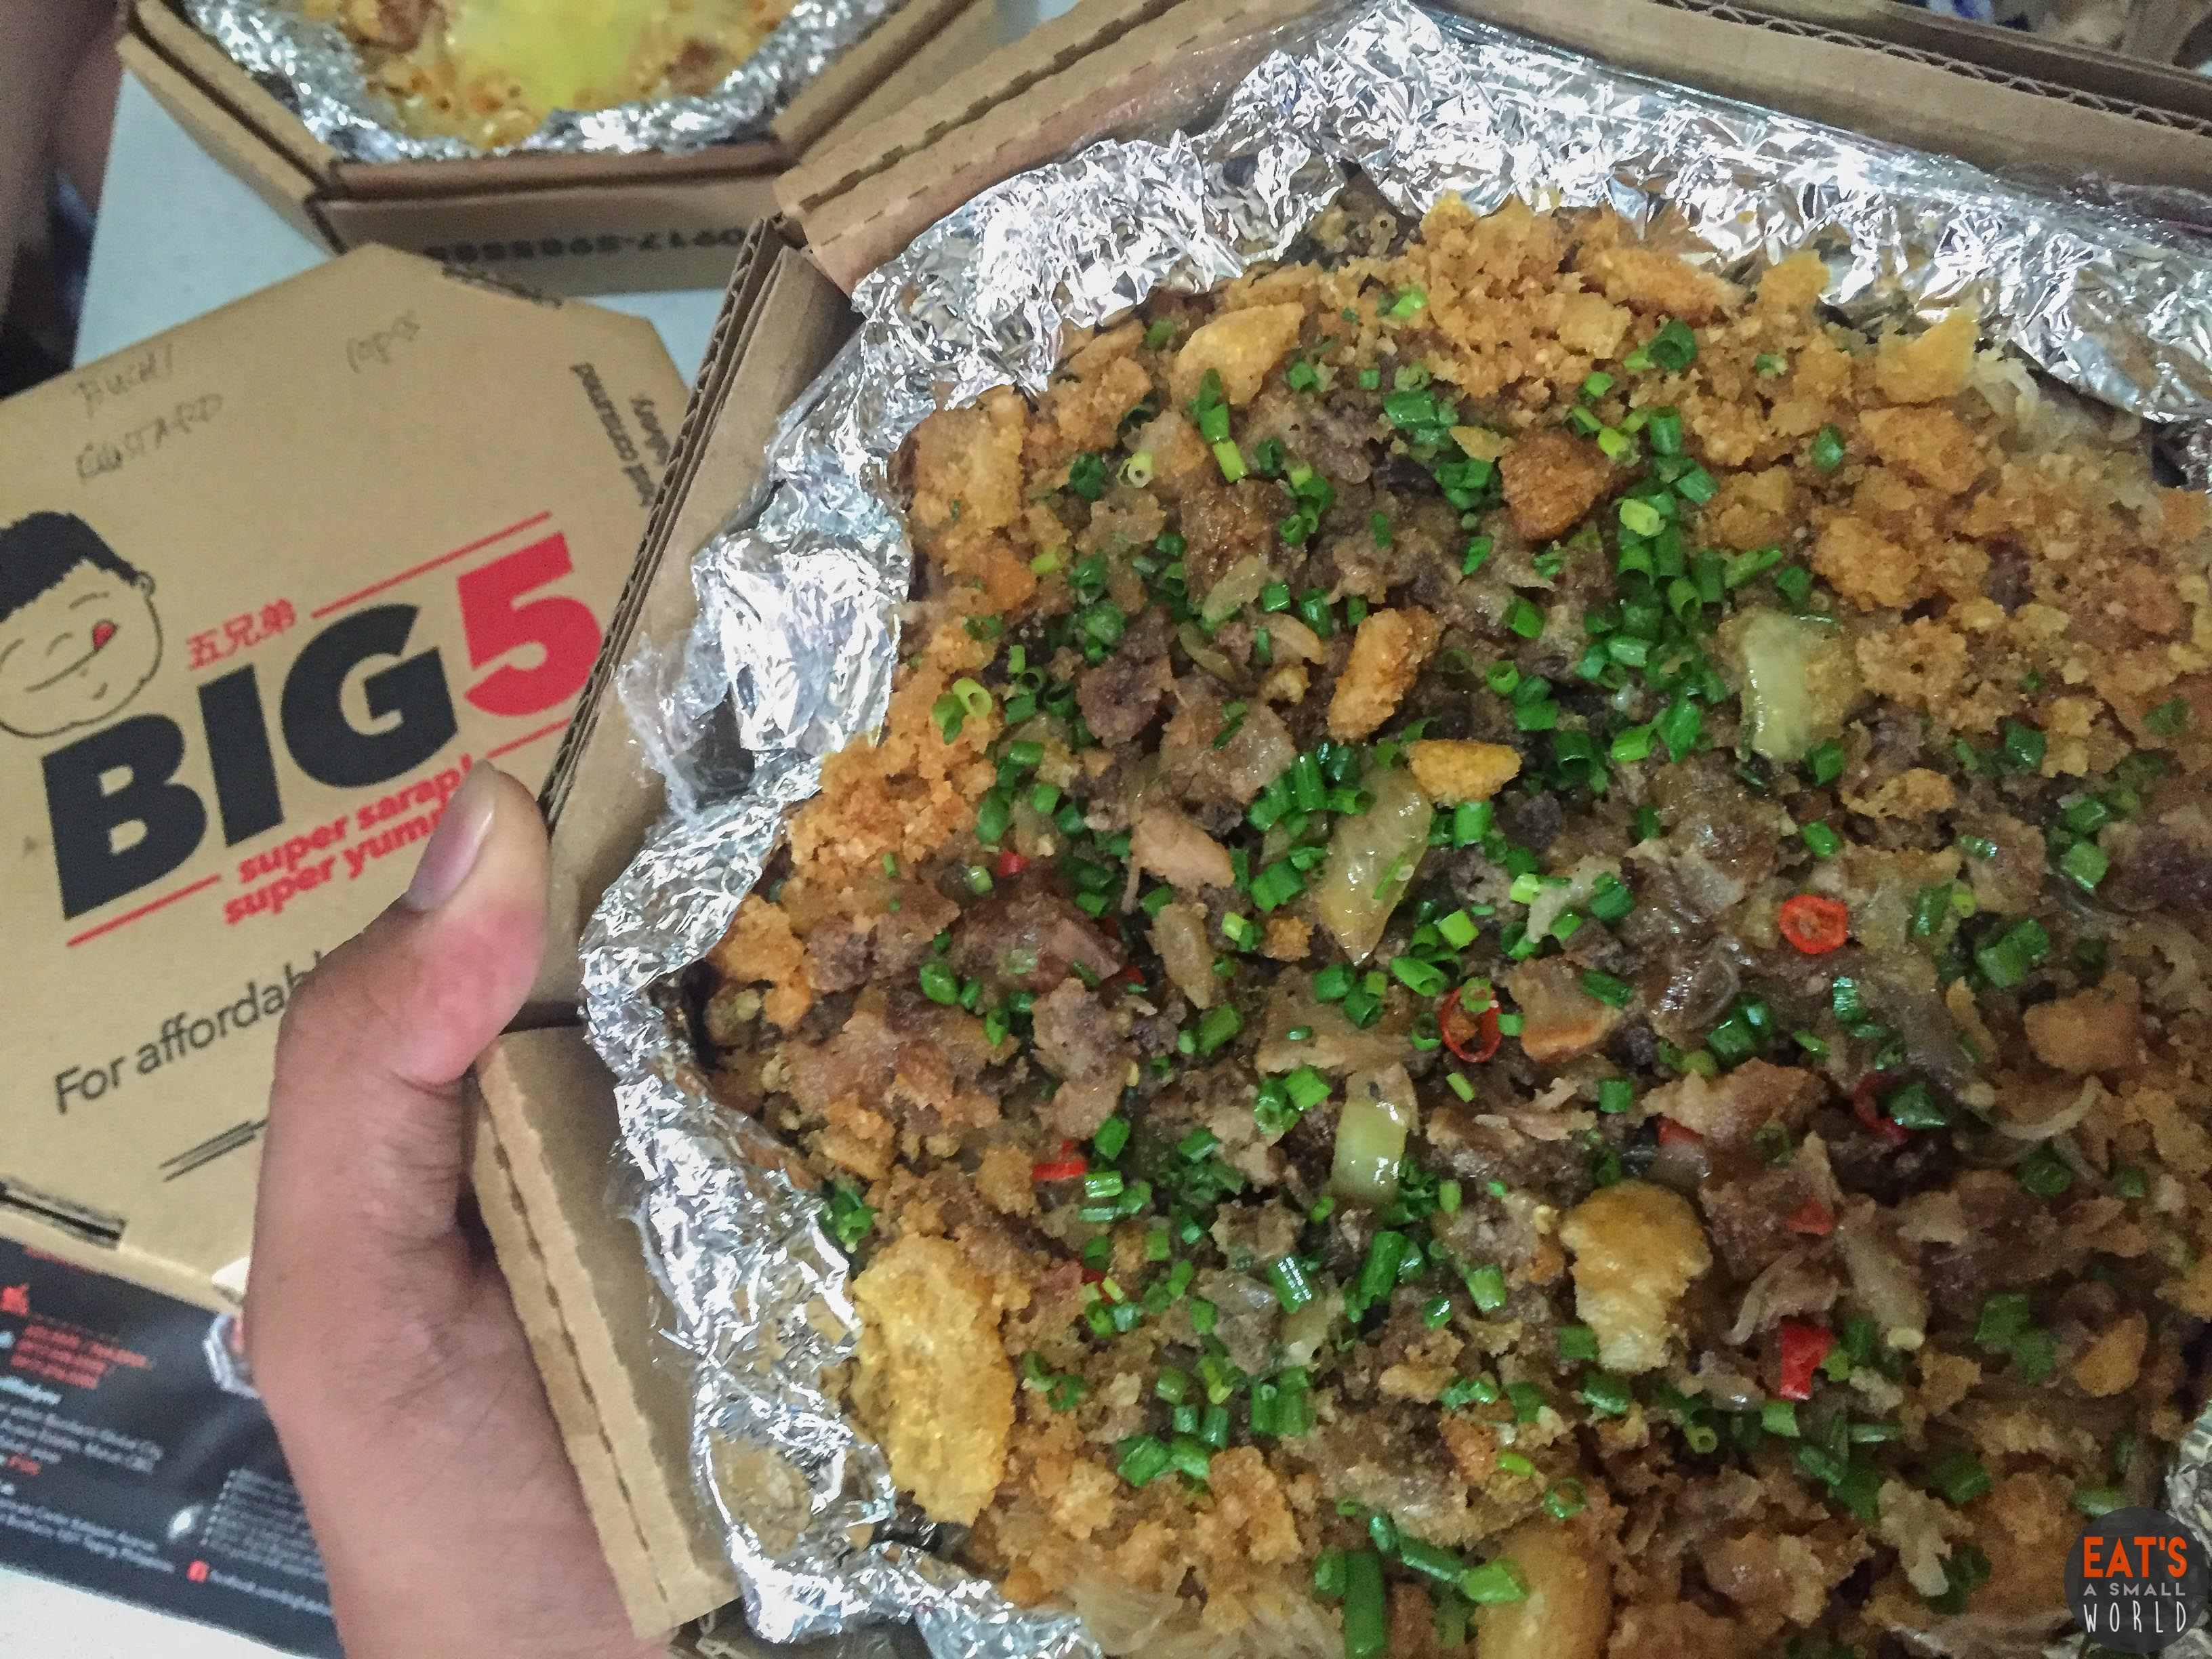 BIG 5 Food Delivery and Take Out (Promo Alert!)